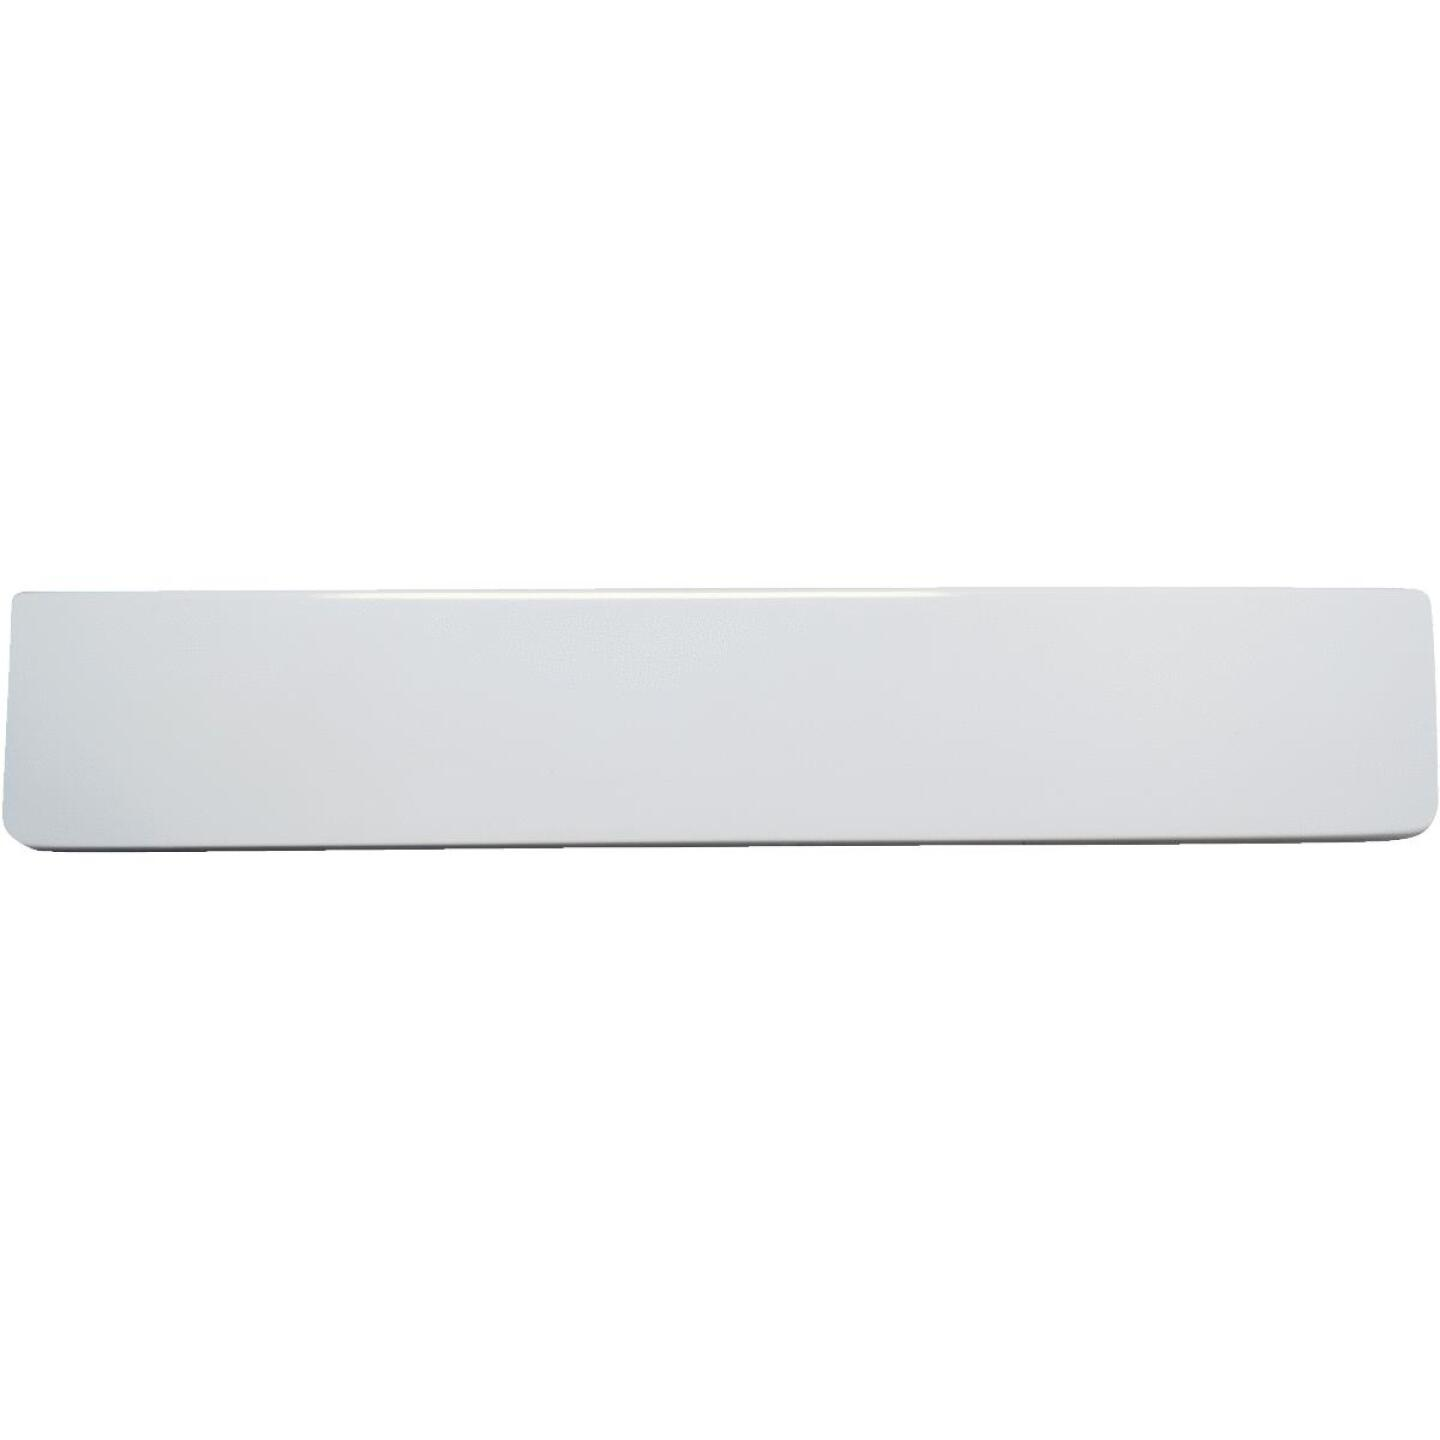 Modular Vanity Tops 4 In. H x 19 In. L Solid White Cultured Marble Side Splash, Universal Image 2